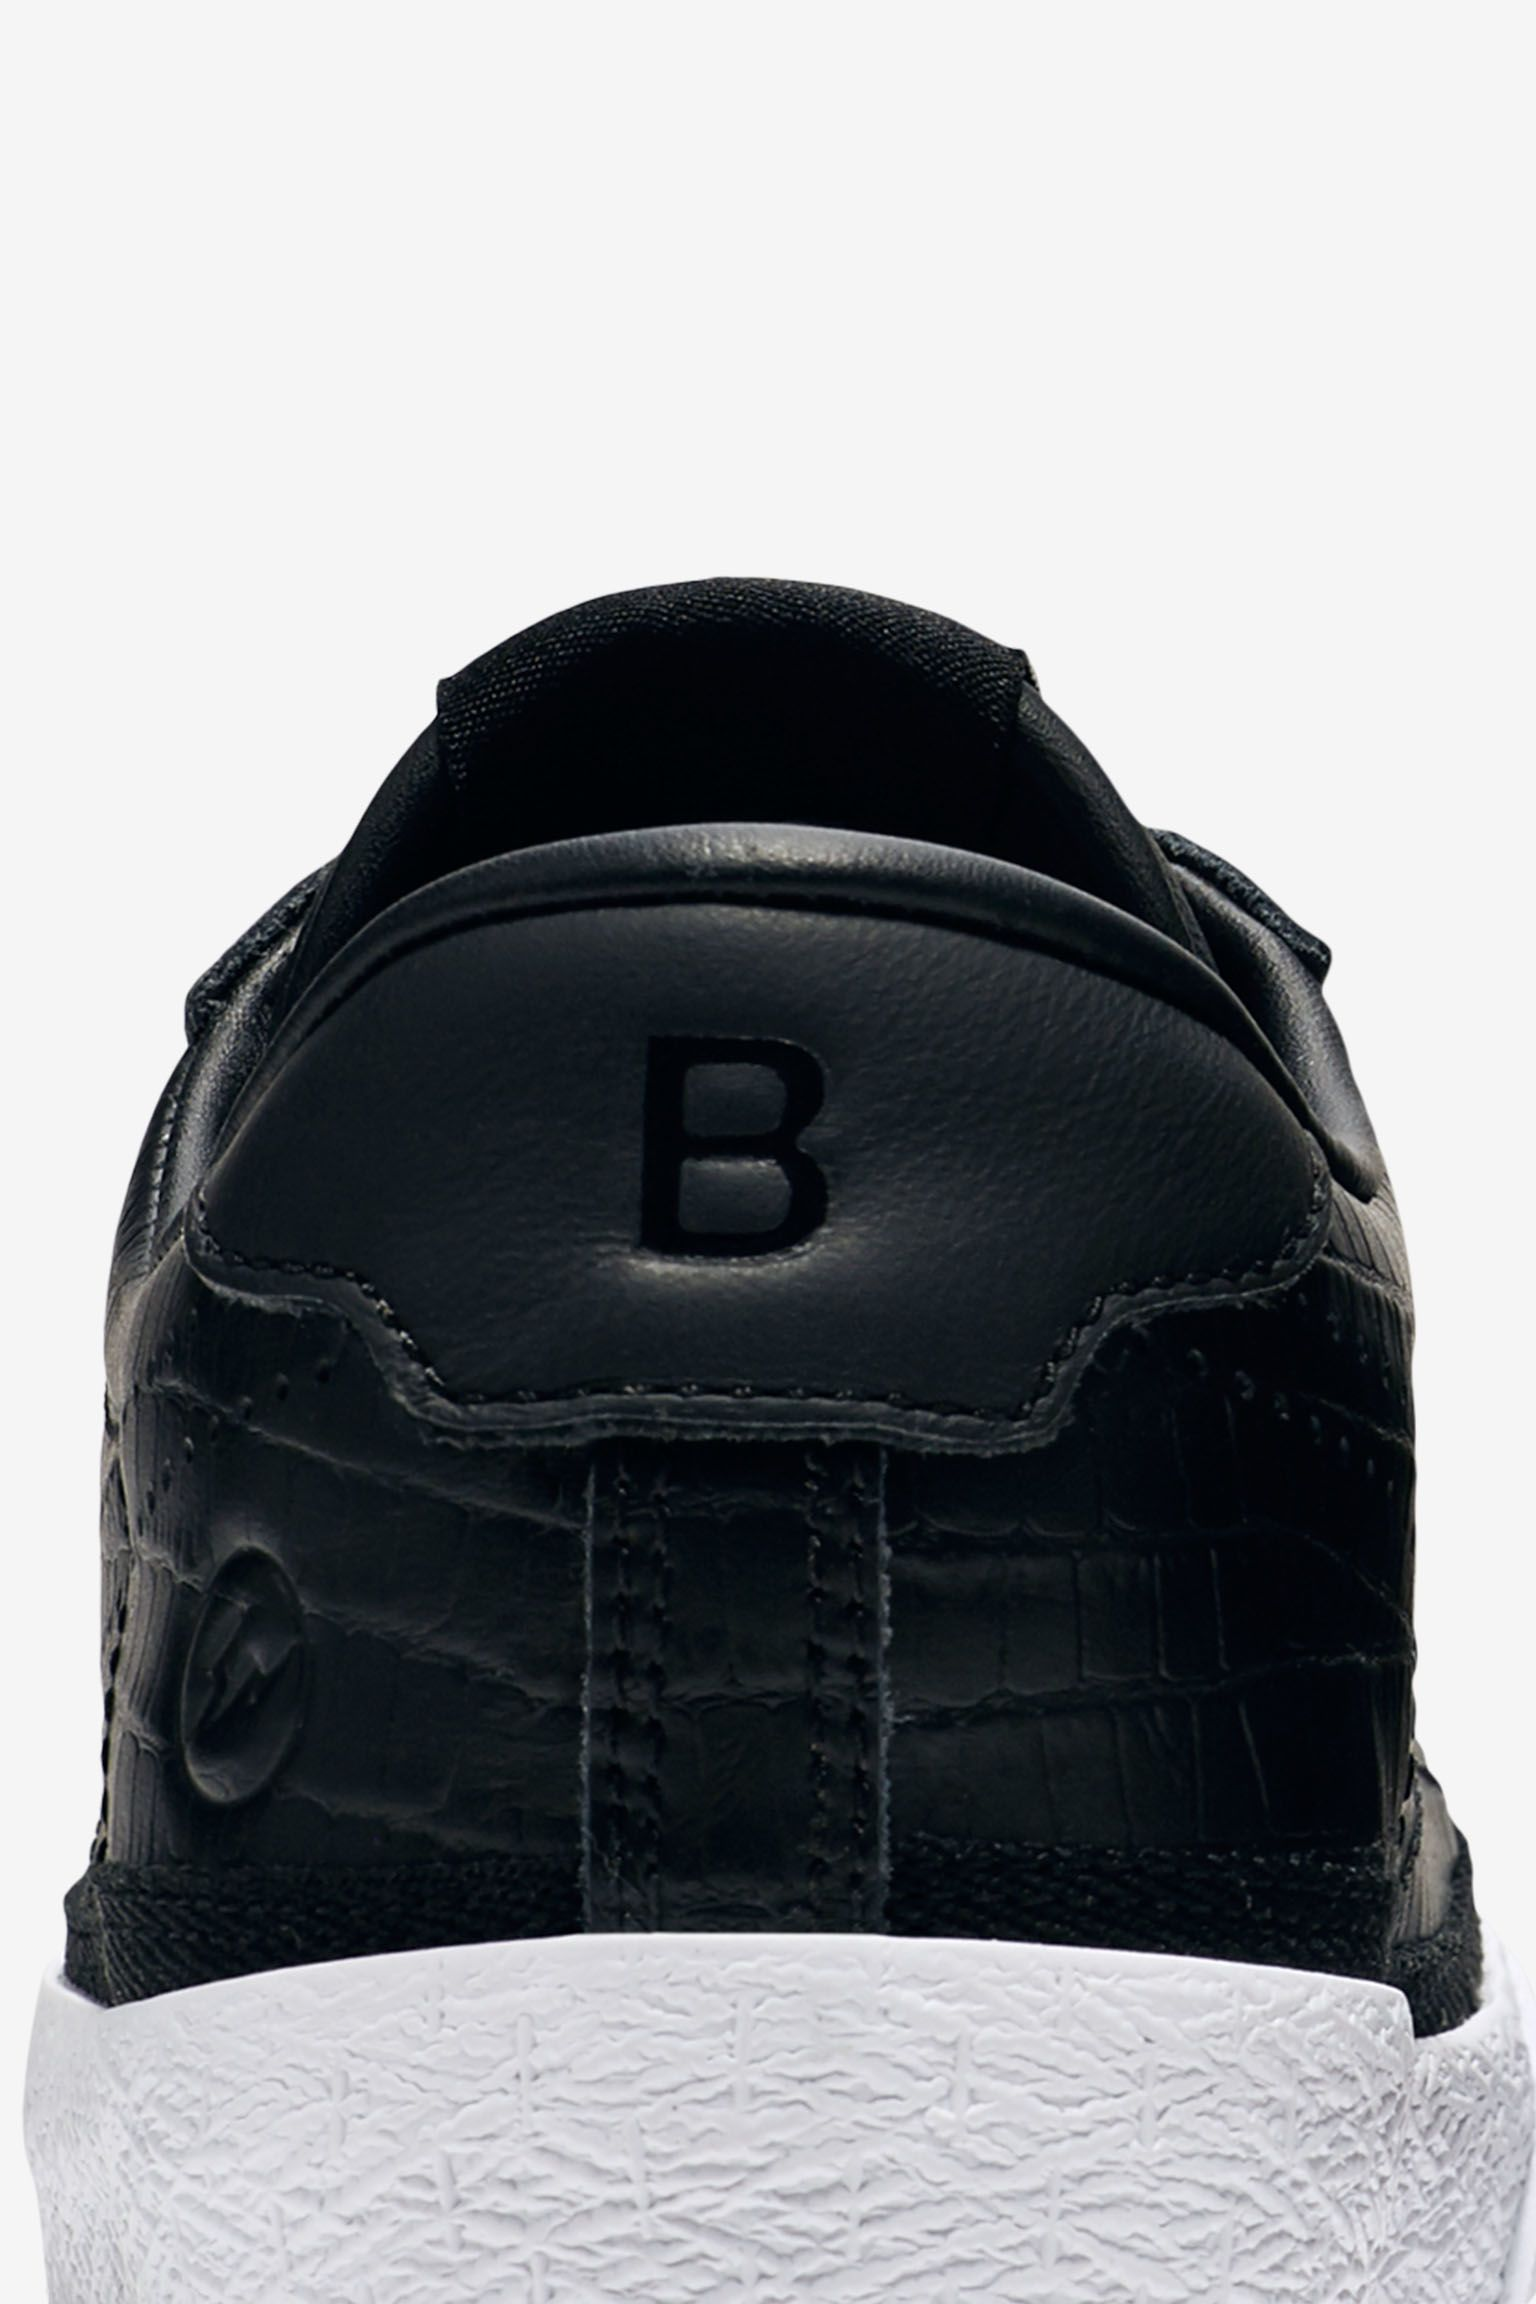 Women's Nike Zoom Tennis Classic x fragment 'Black'